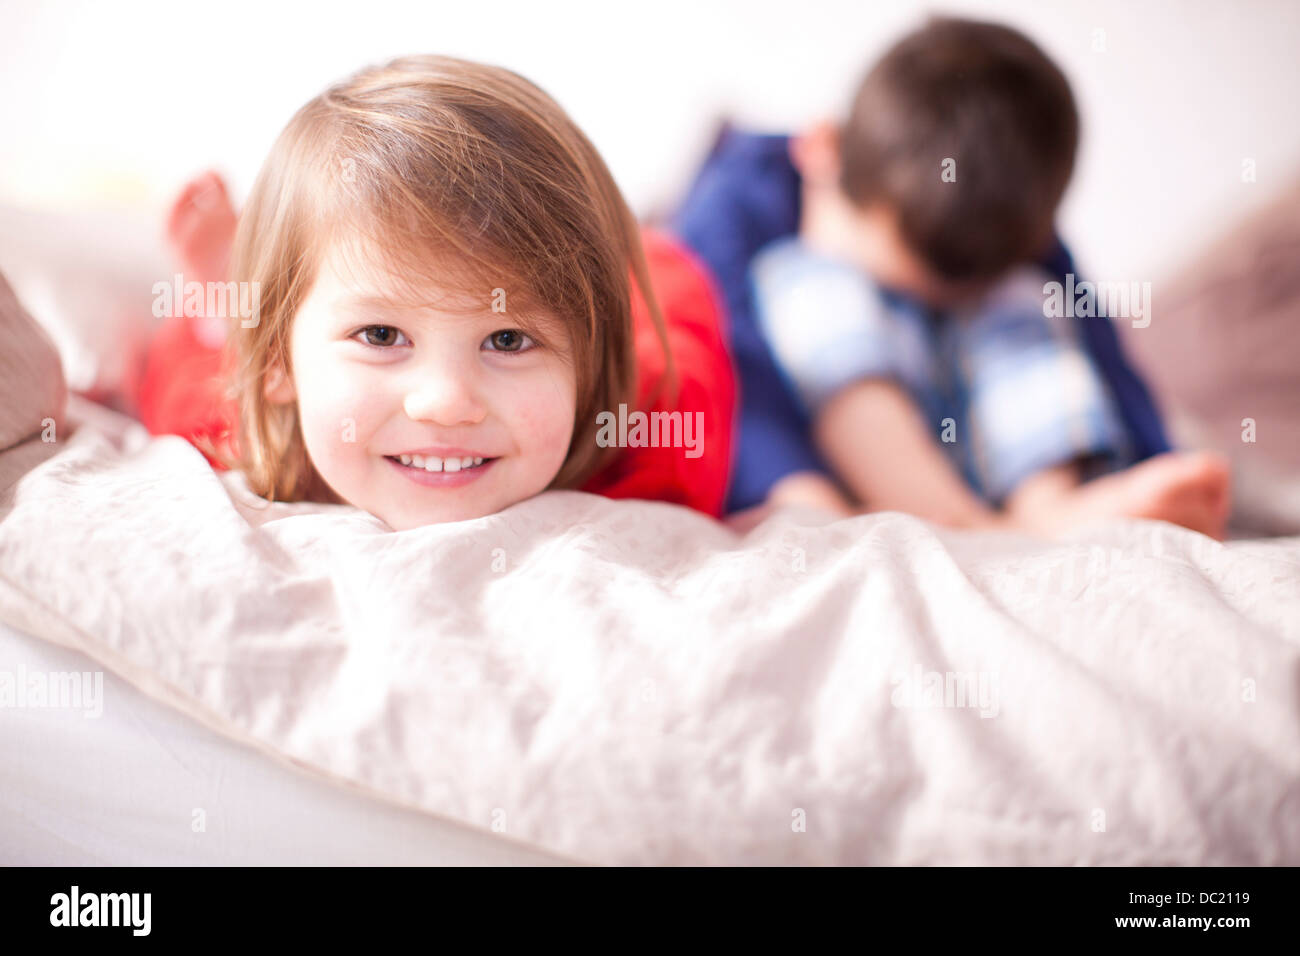 Portrait of young girl smiling and brother sulking - Stock Image